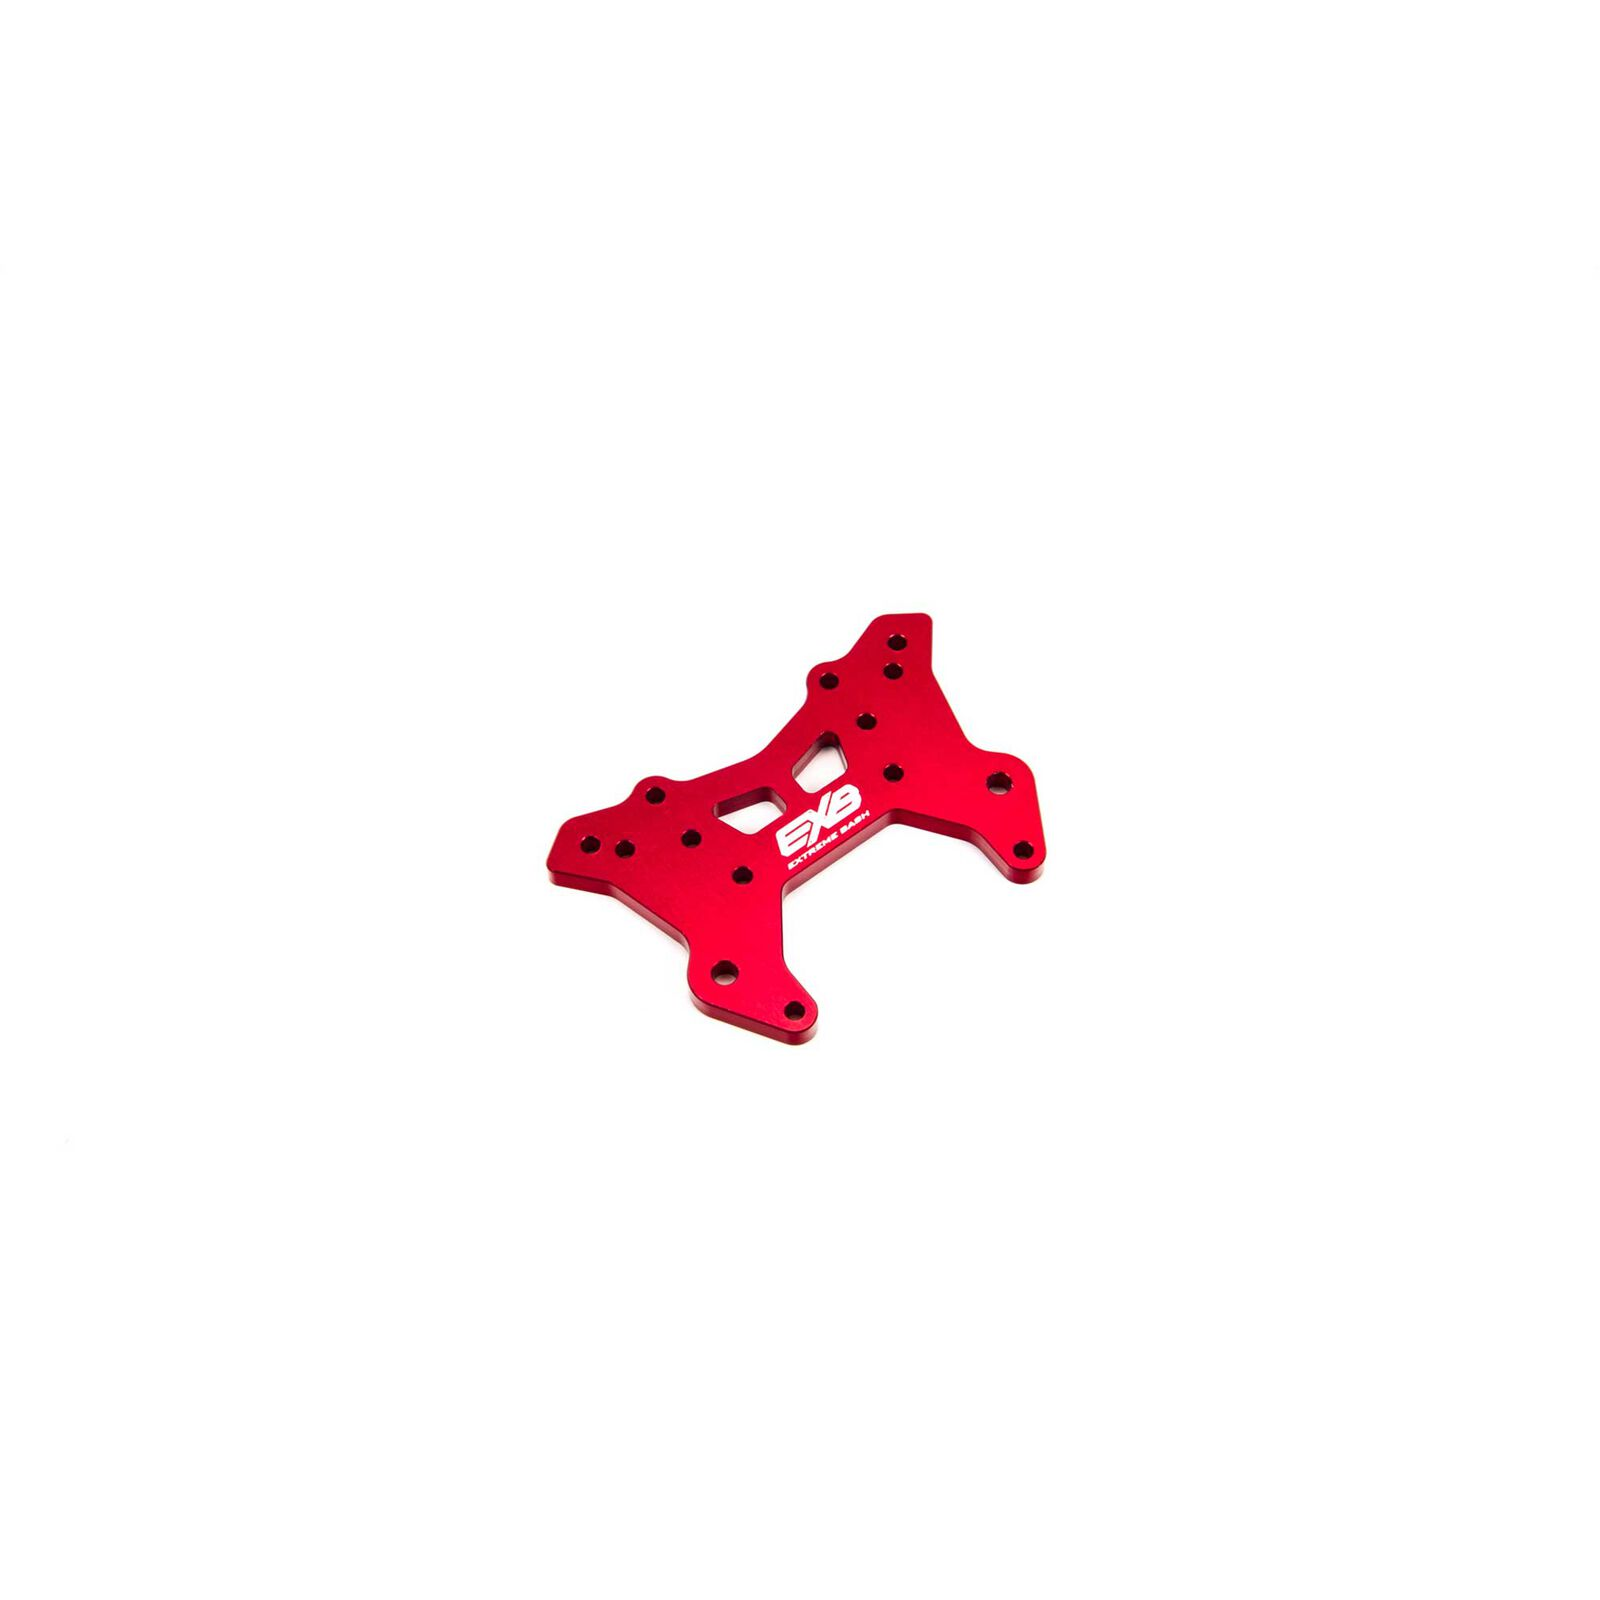 Front Aluminum Shock Tower CNC 7075 T6 RS, Red: EXB